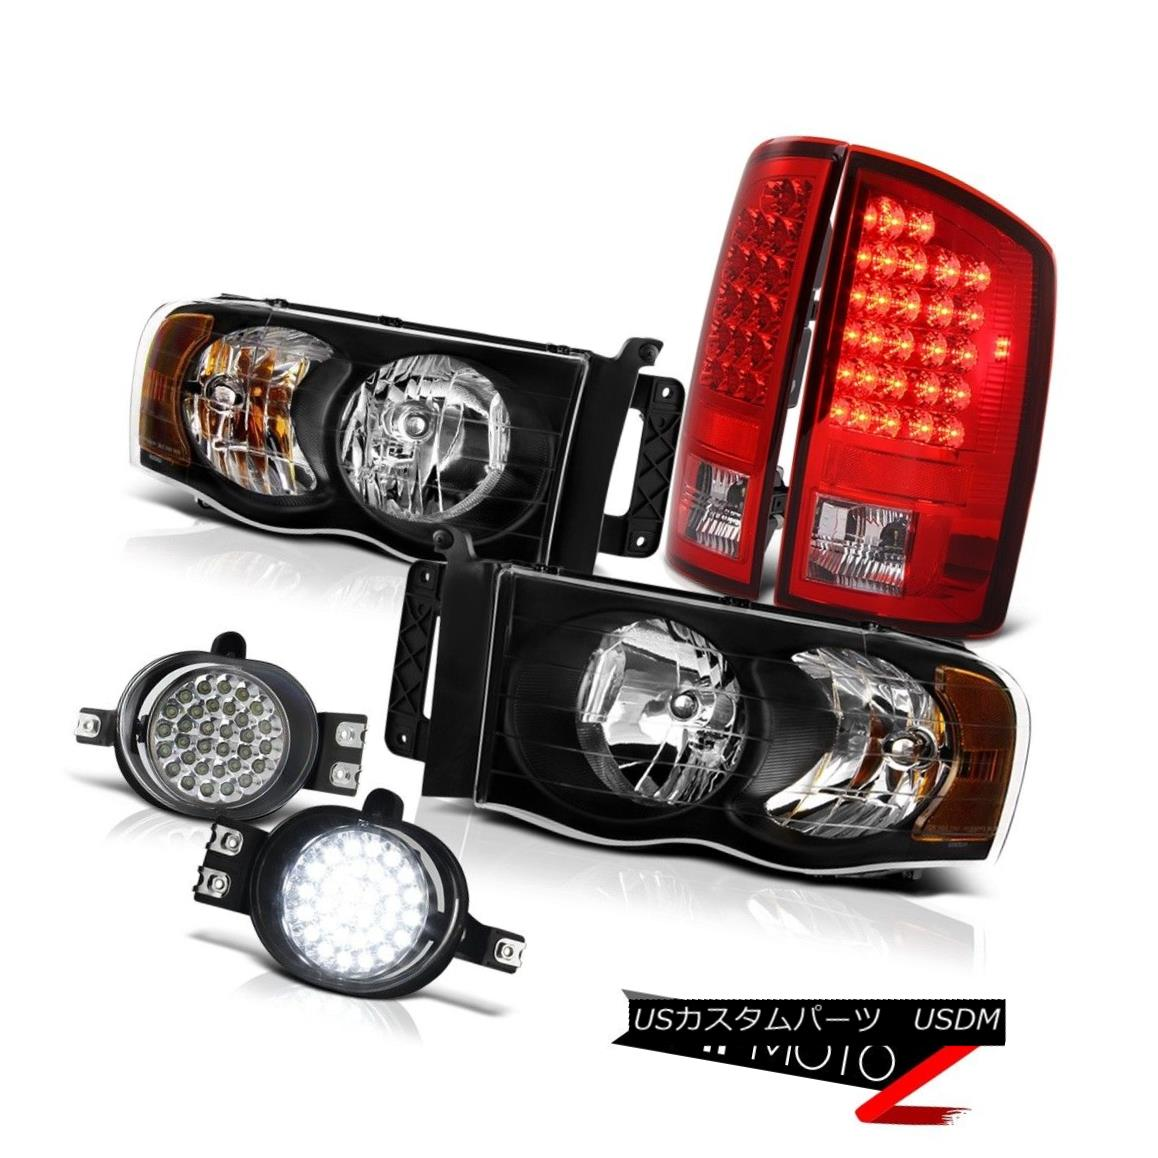 ヘッドライト 2002-05|Dodge Ram|BLK HeadLight CHROME RED LED TAIL LIGHT CHROME LED FOG LIGHT 2002-05 | Dodge Ram | BLKヘッドライトクロームレッドLEDテールライトクロームLED FOGライト